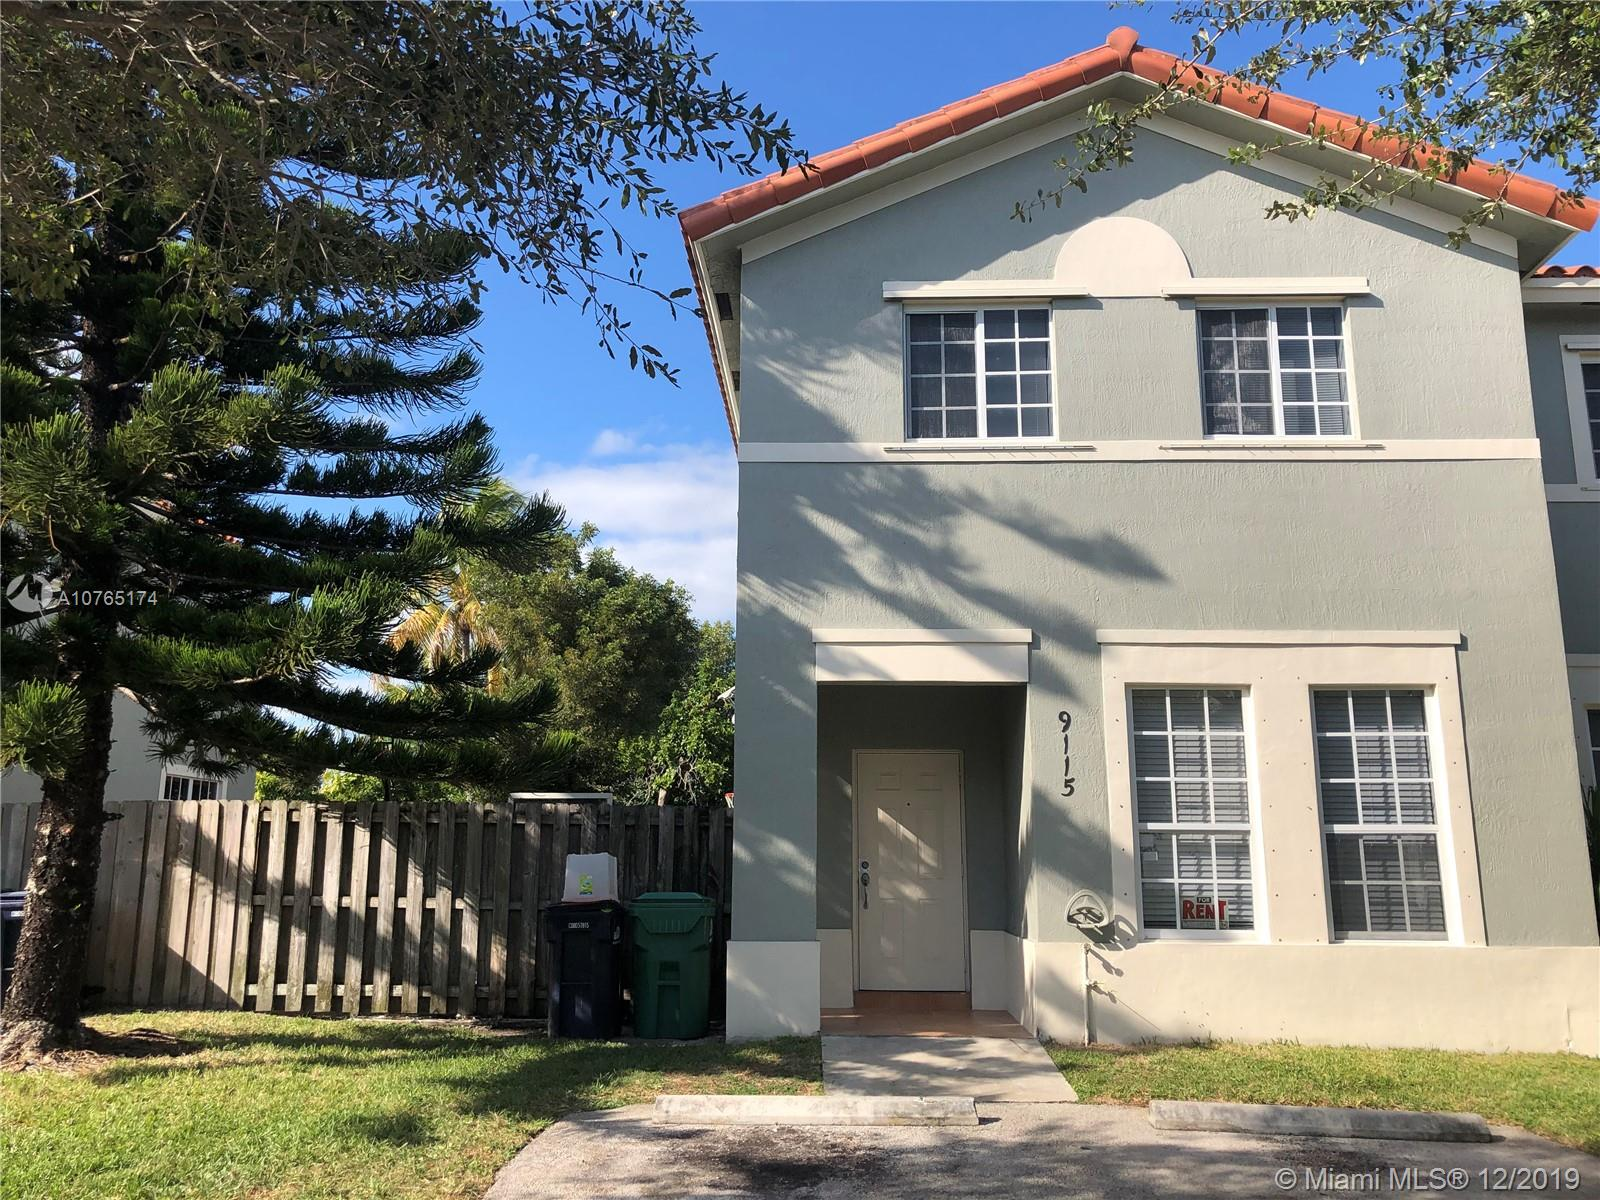 Beautiful two-story townhouse in quiet street, updated with 3 bedrooms and 2.5 baths. Very well-kept unit with fenced yard, tile downstairs, wood floor upstairs. New washer and dryer inside the unit. Open kitchen opens to family room. Centrally located in Cutler Bay close to transportation (Old Cutler Road) and easy access to US1.